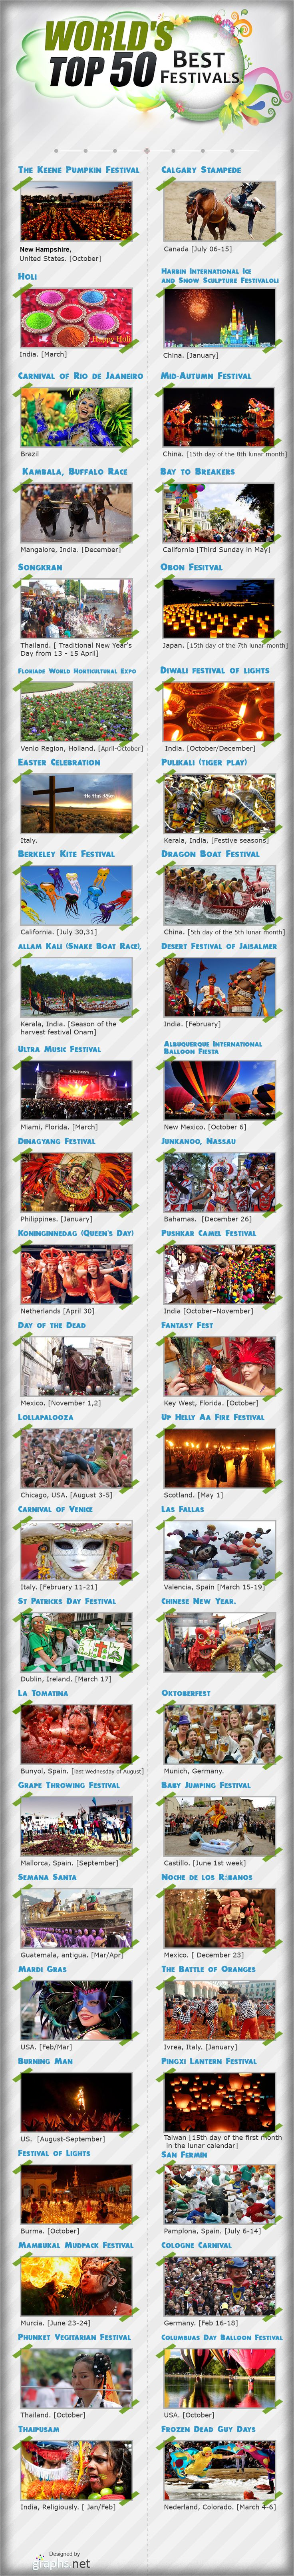 #World's Top 50 Best #Festivals of all Time